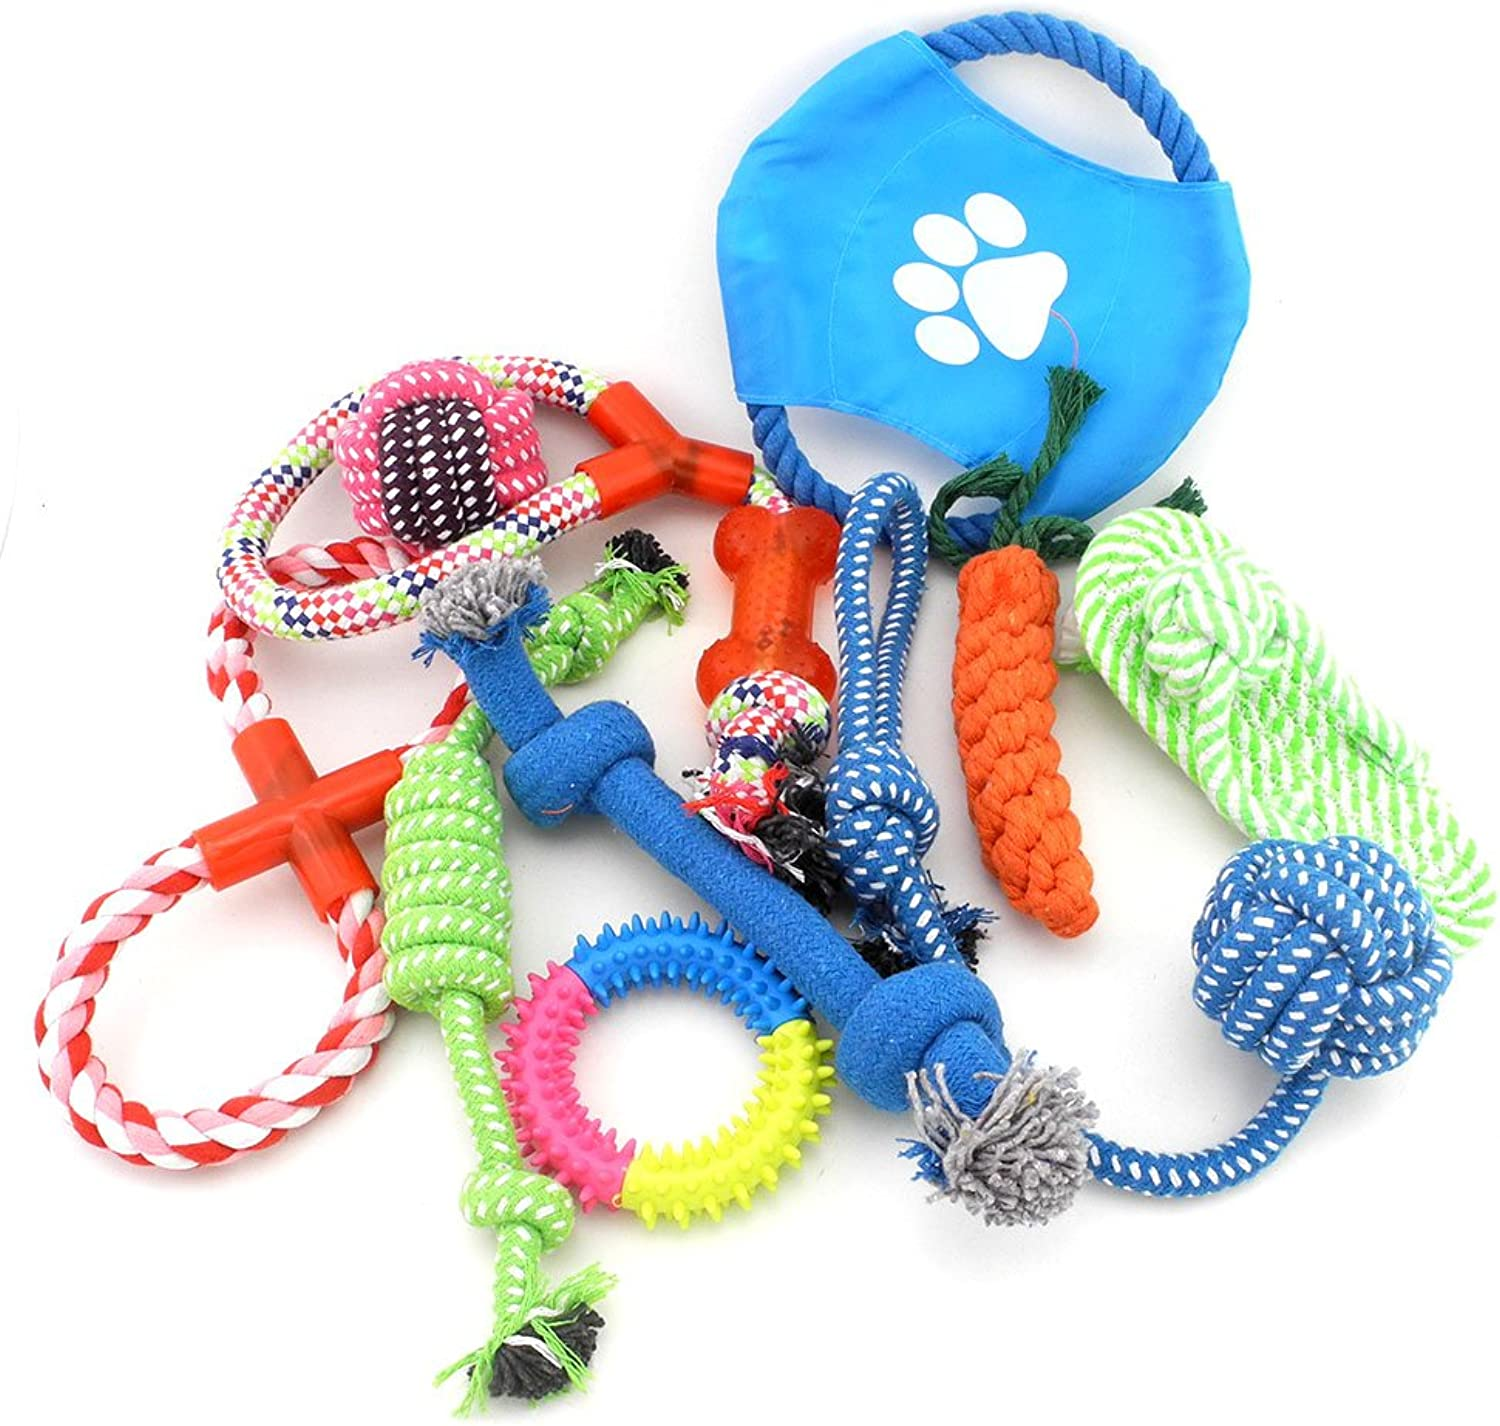 Ranphy Medium Large Dog Toys 10 Pack Gift Set Chew Roy TugoWar Ball Rope Toys on Rope for Aggressive Chewers